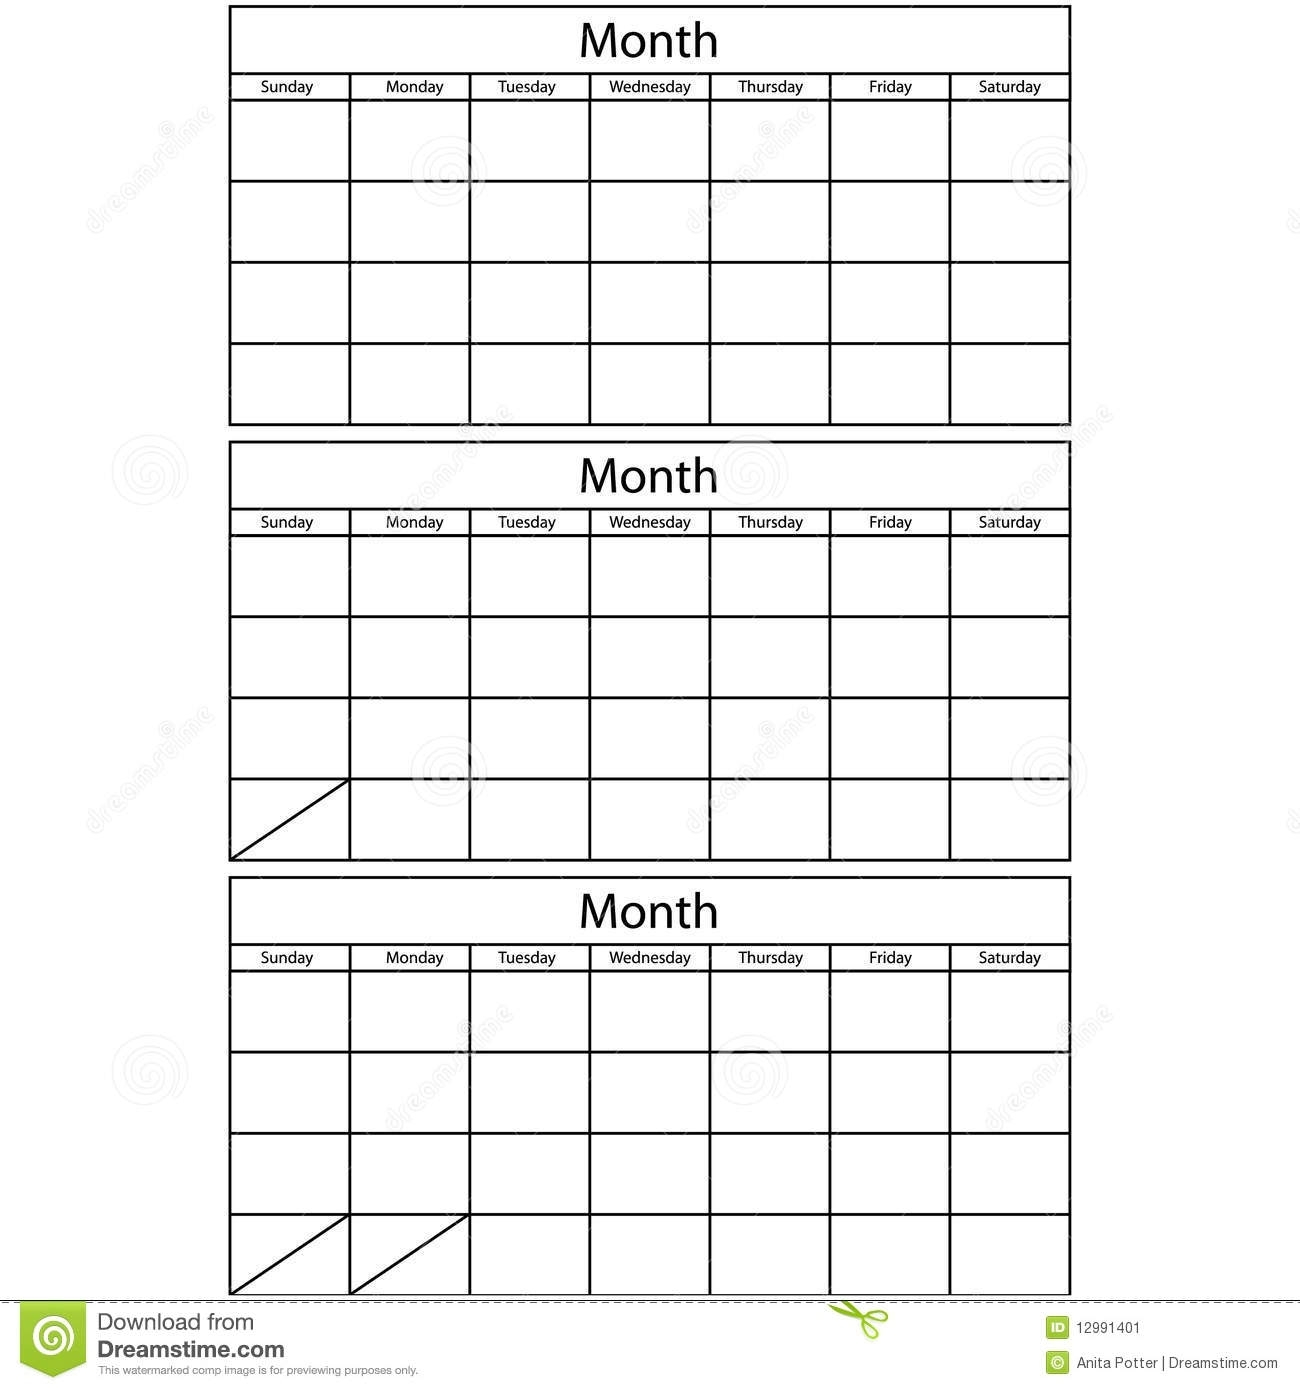 Blank Calendar 3 Templates Stock Vector. Illustration Of Month intended for Printable 3 Month Calendar Templates